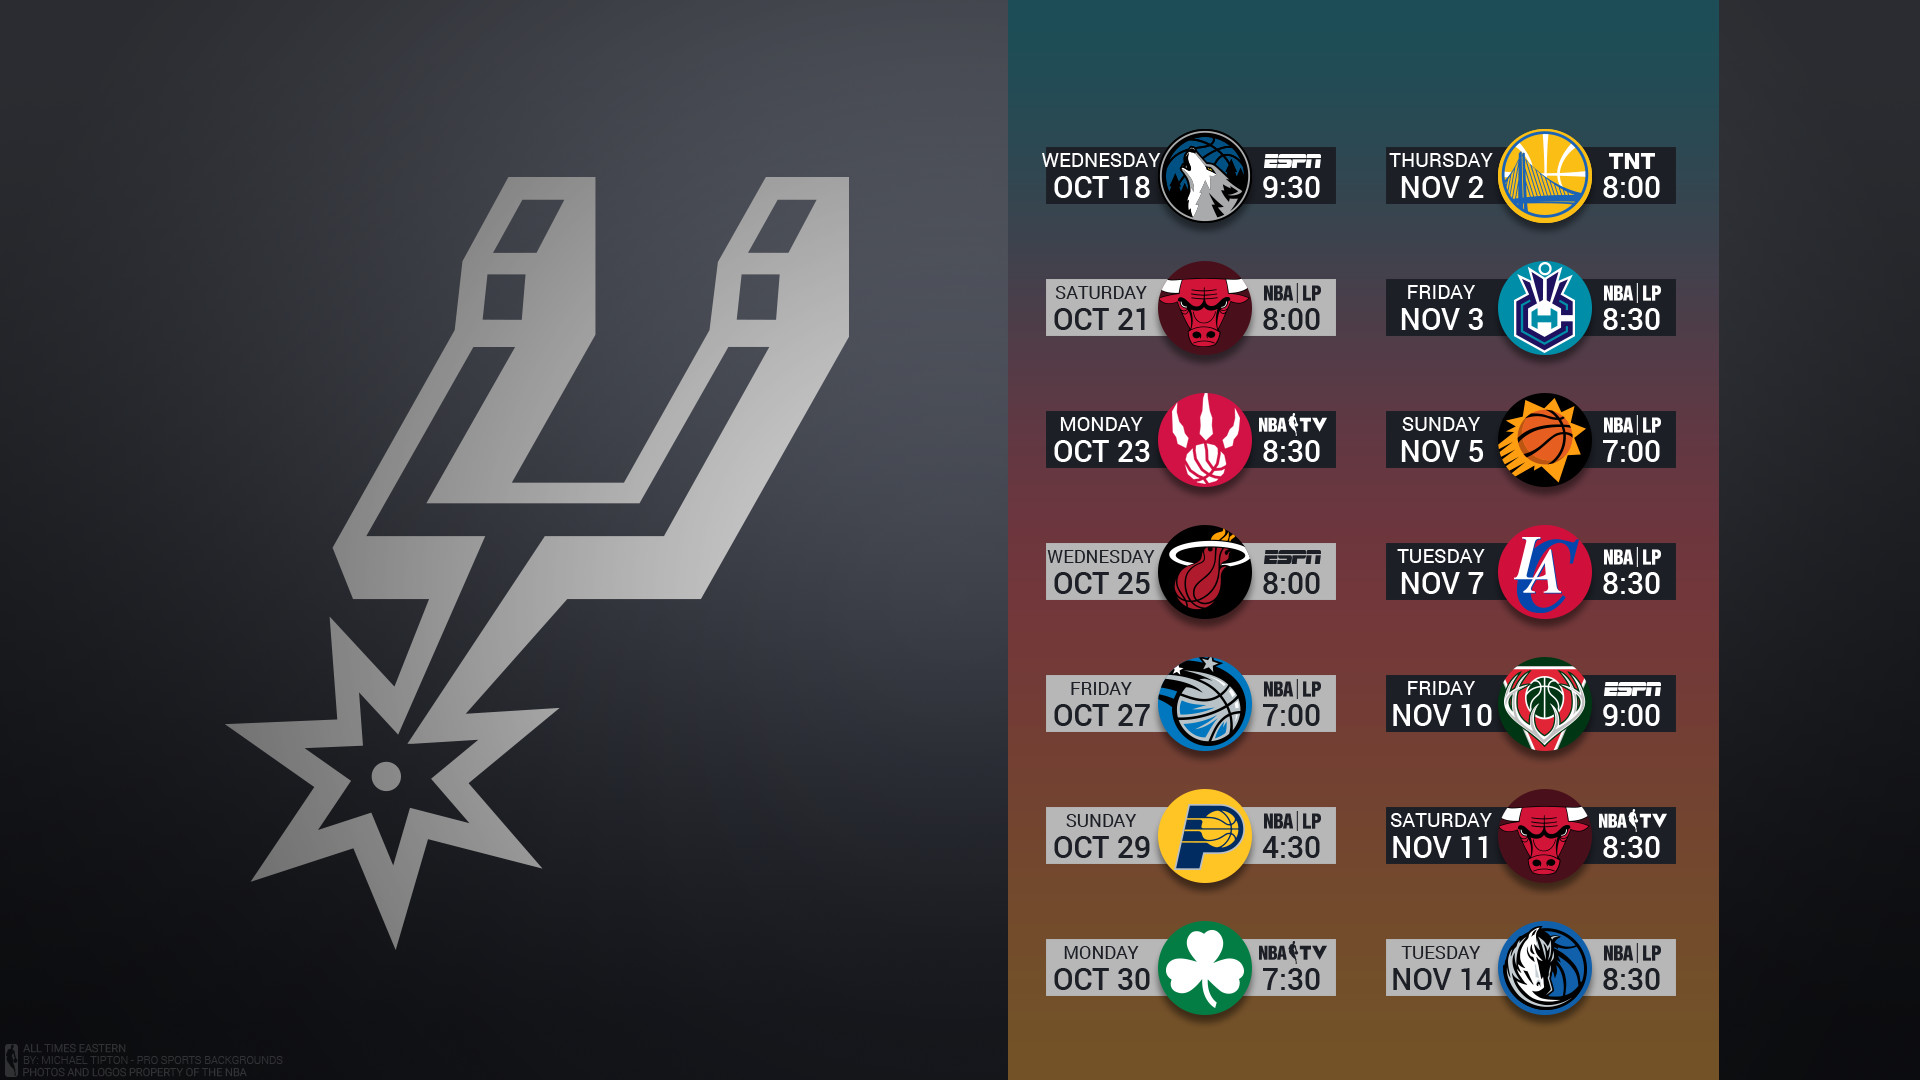 NBA Team Logo HD Wallpaper FREE Download 1024x768 Source Spurs Wallpapers 2018 54 Pictures